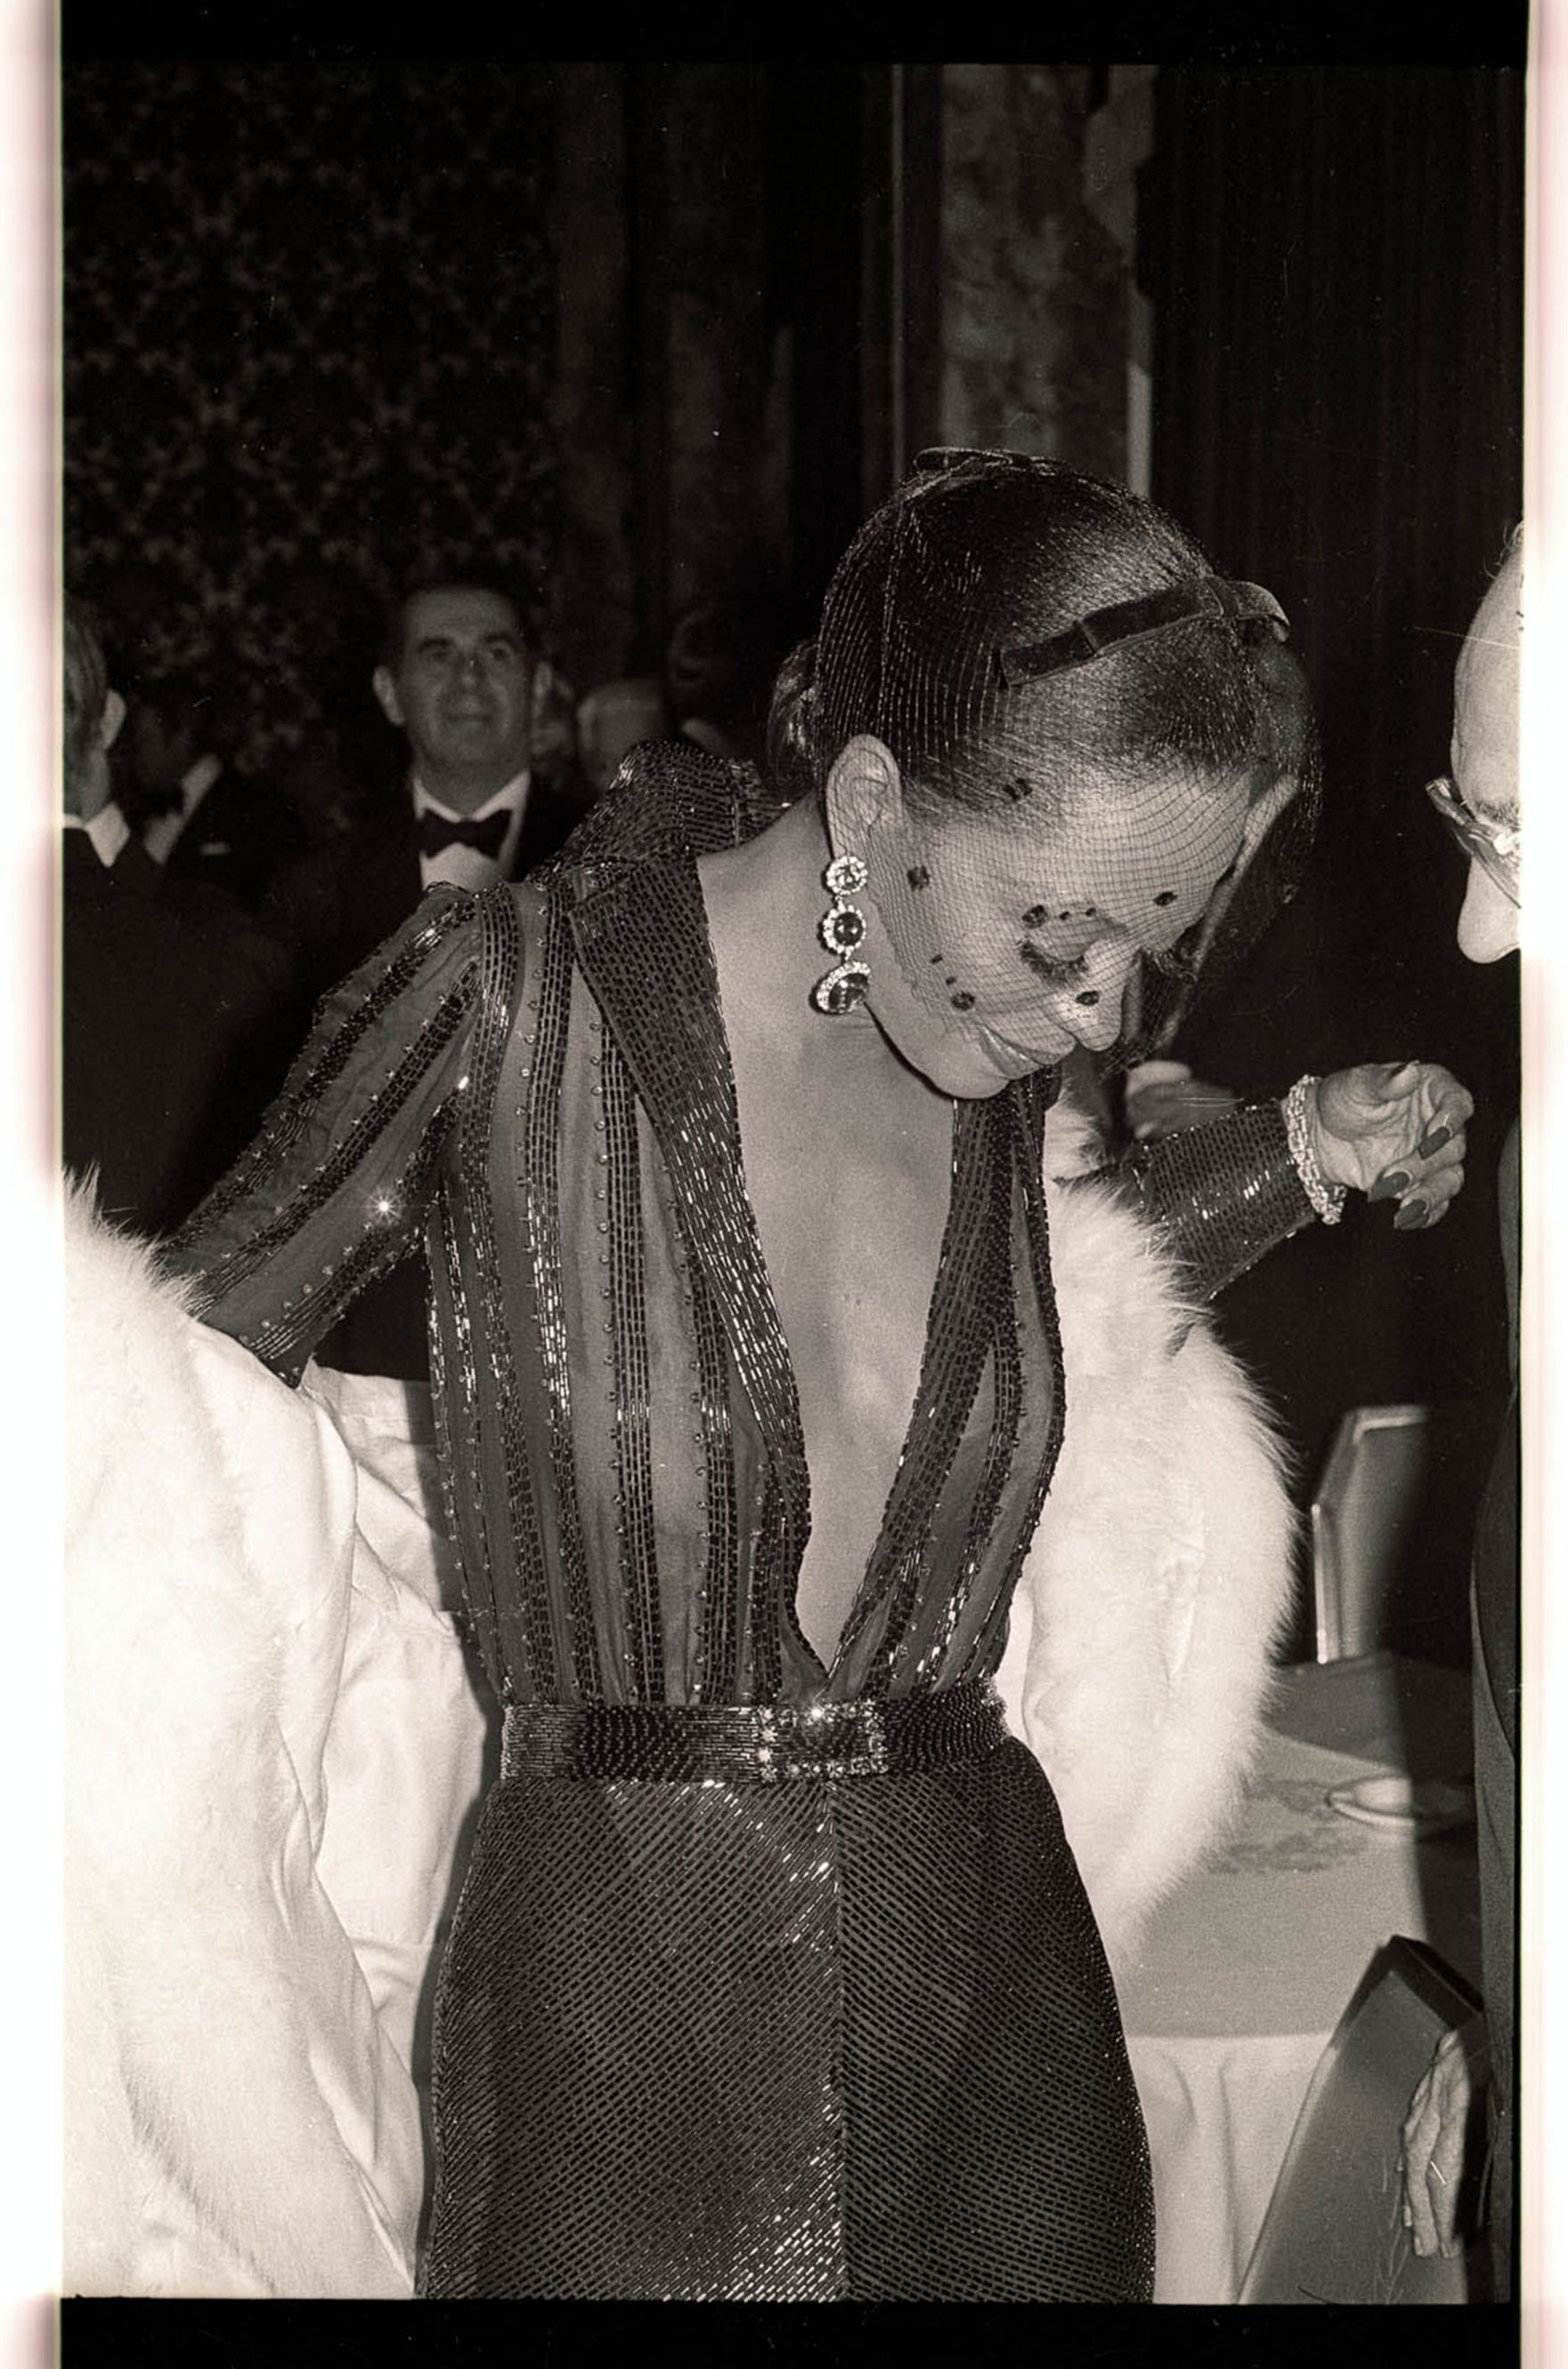 Diana Ross and Truman Capote Partied Around This Paparazzi Photographer